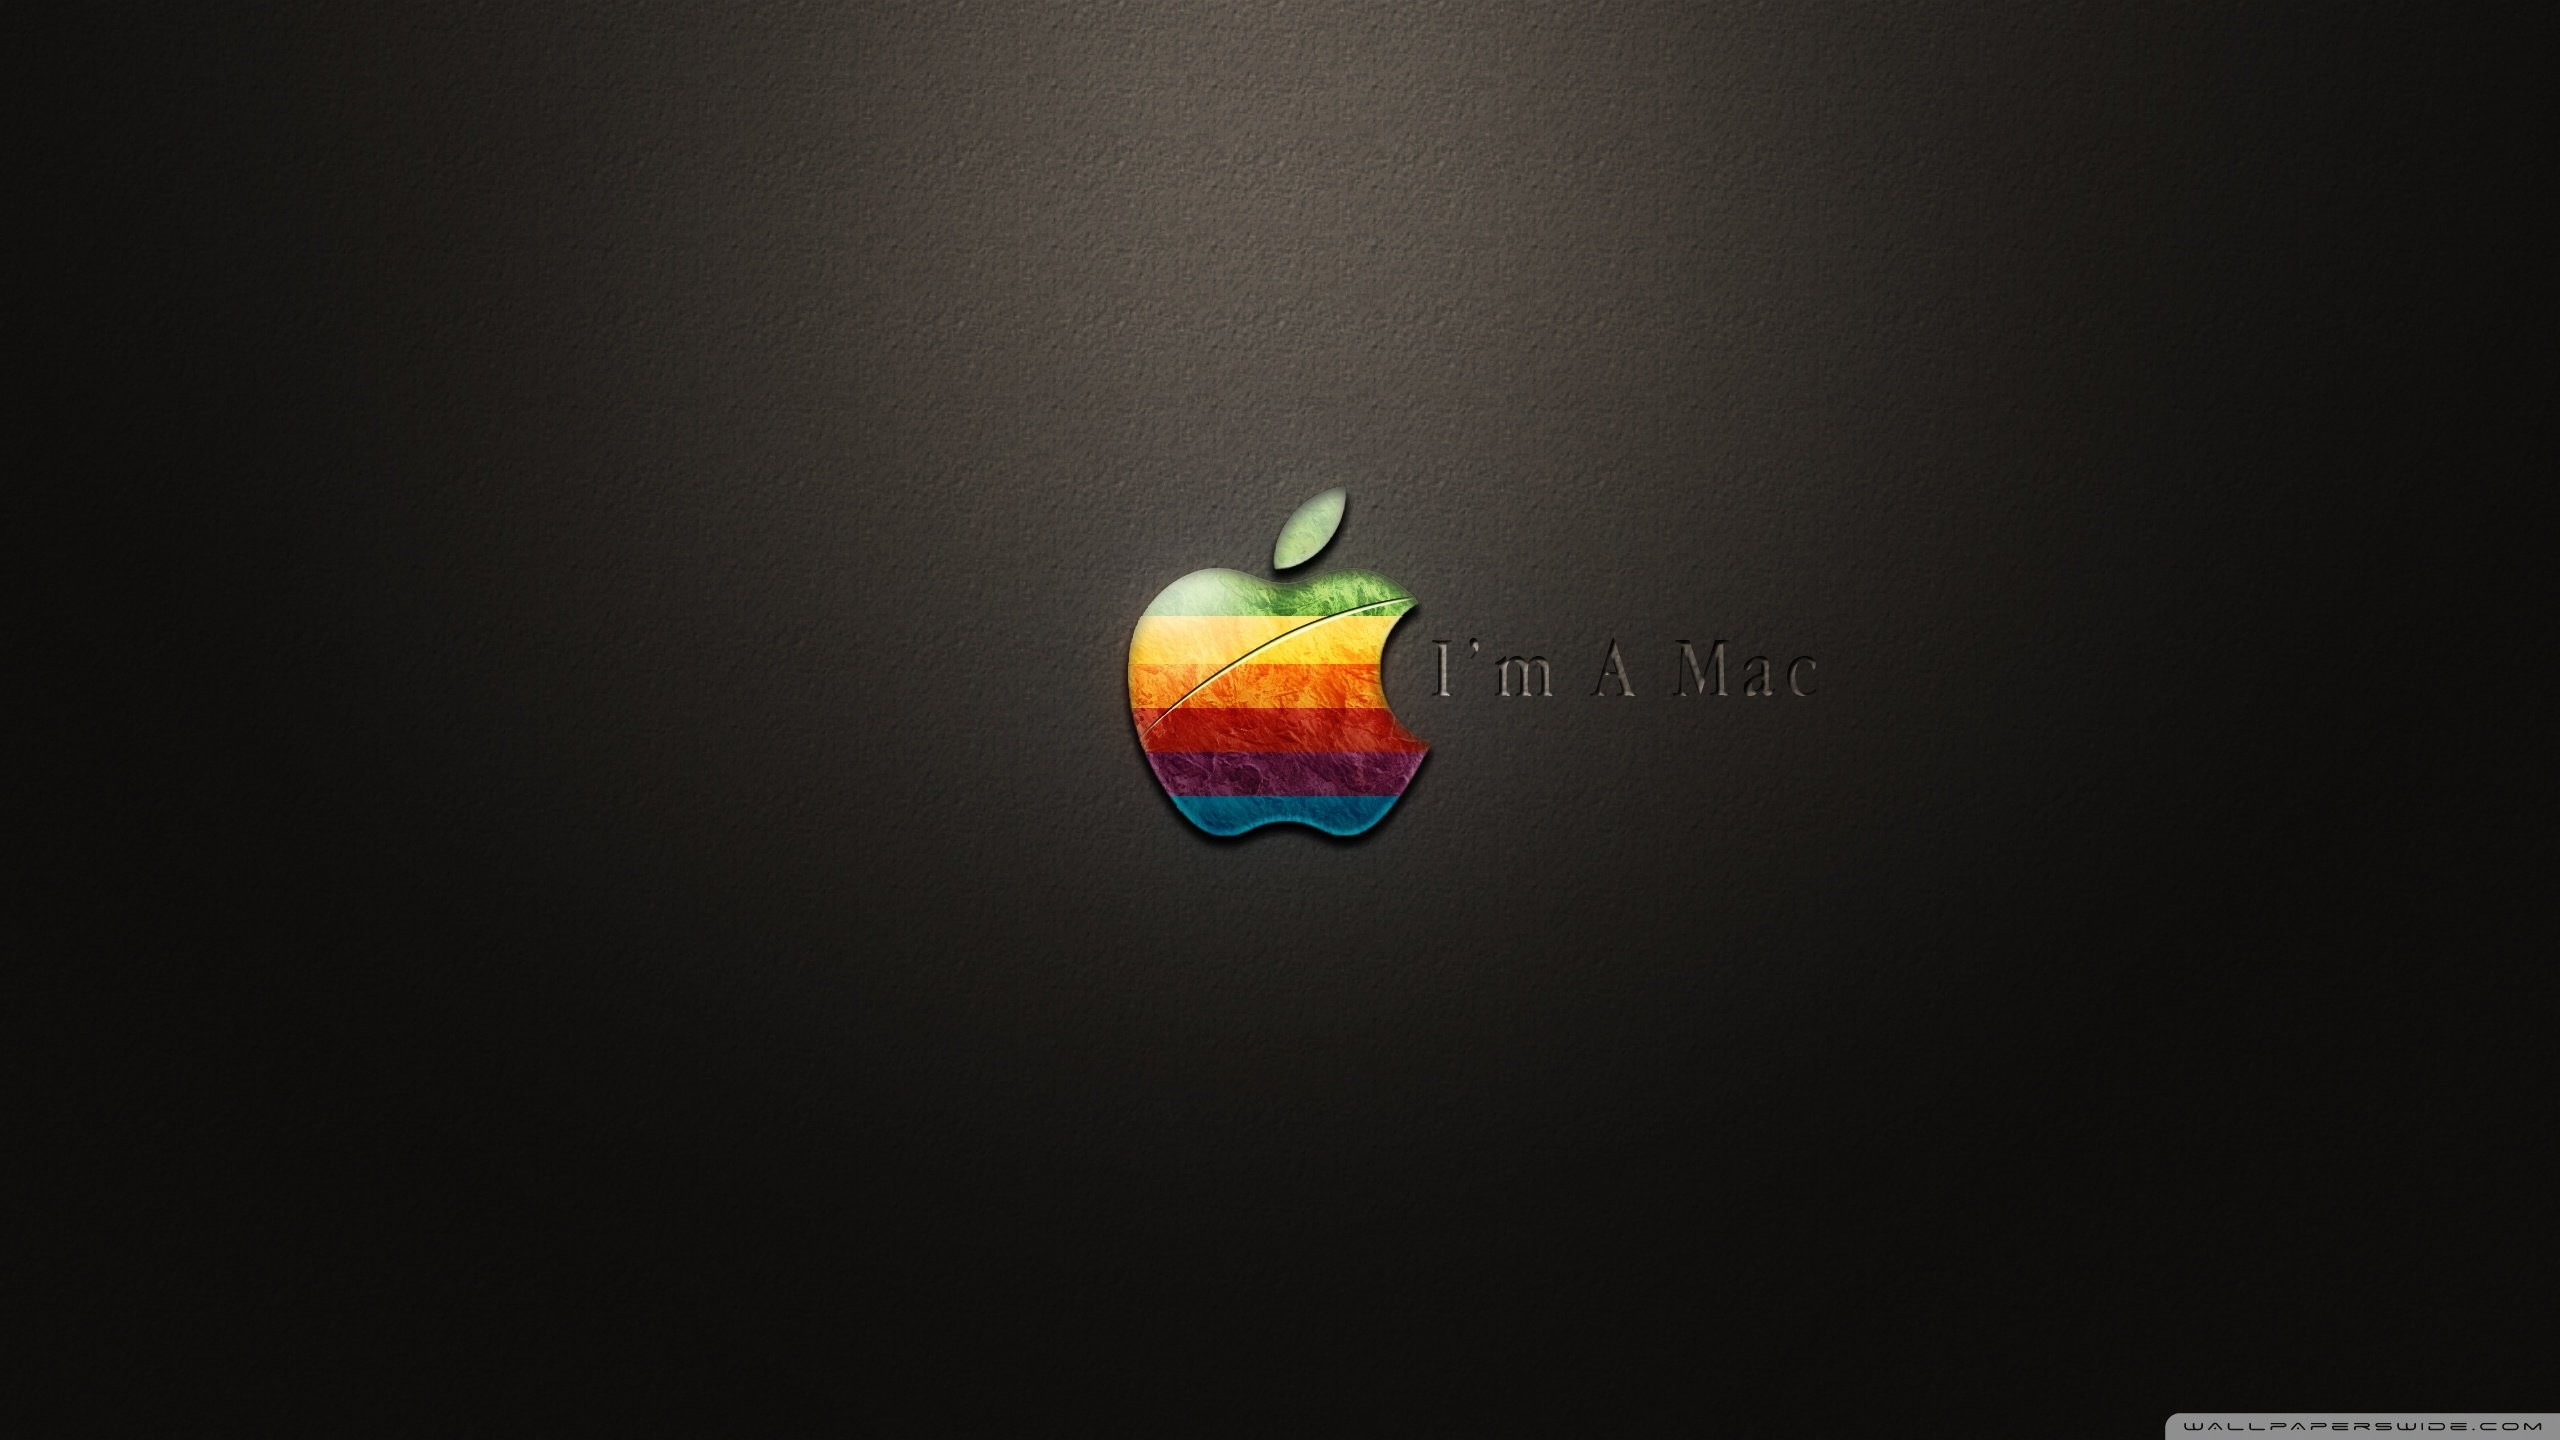 Think Different Wallpapers 73 Images